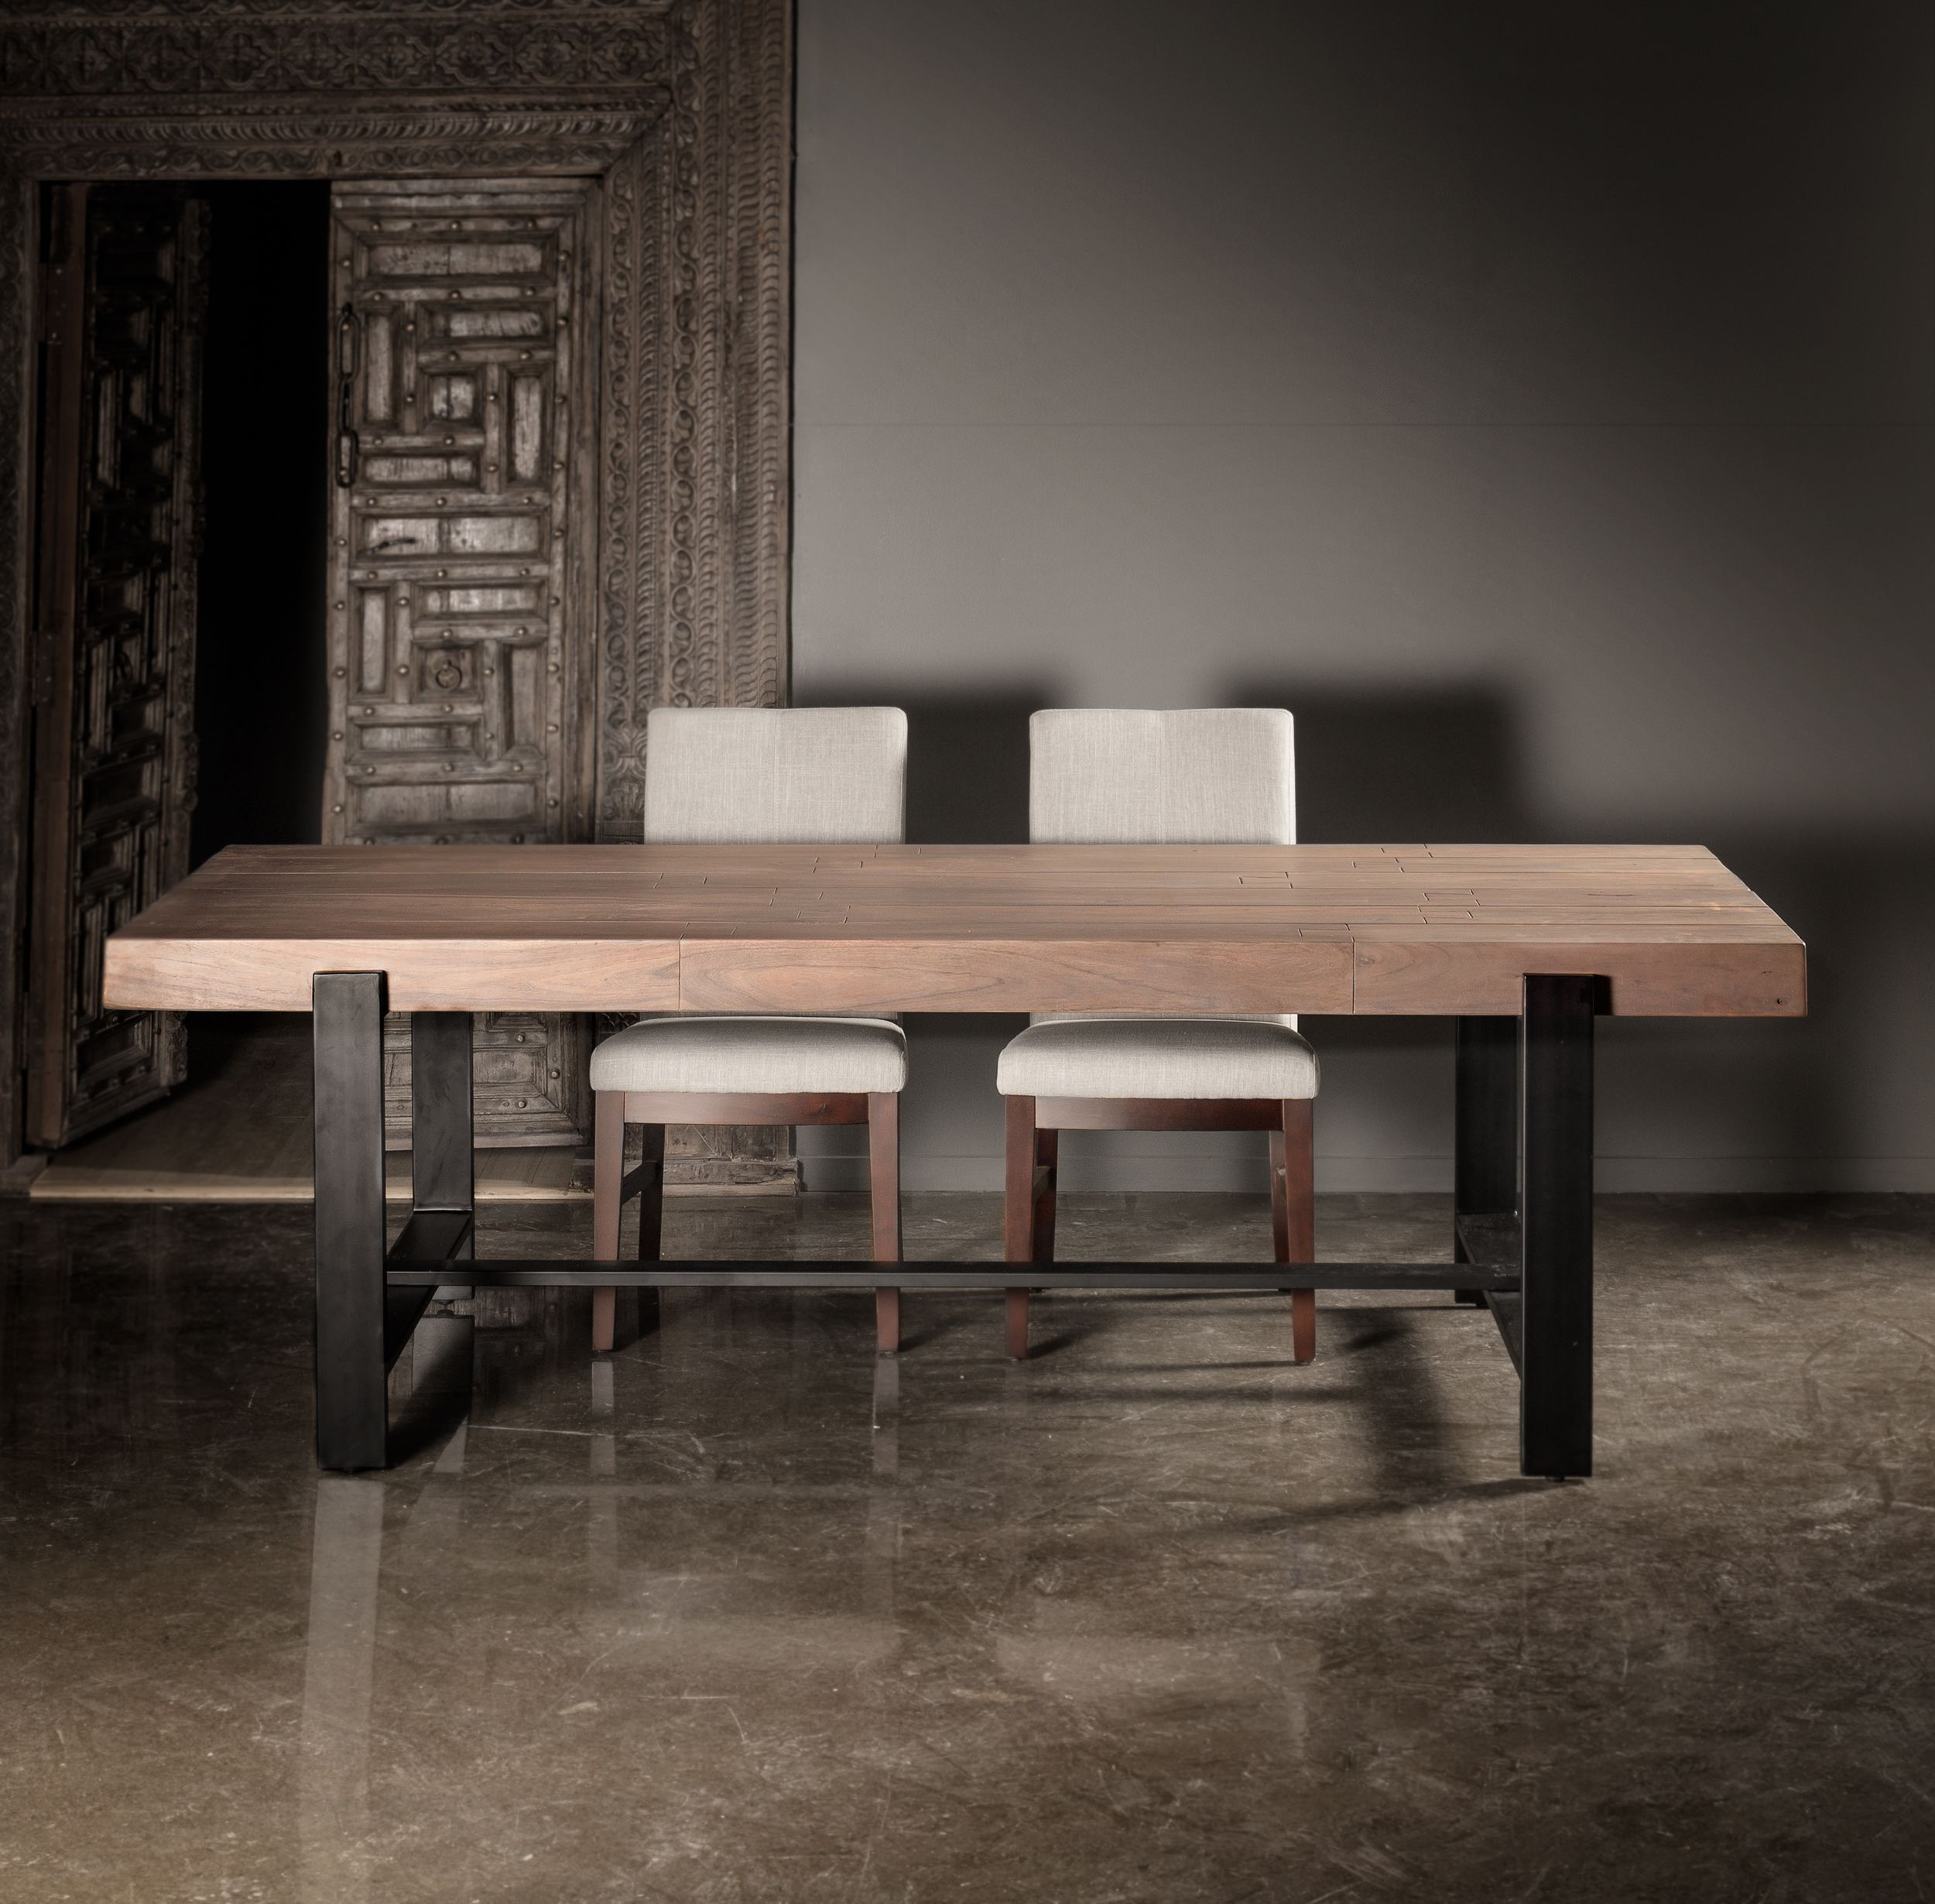 Each Beam Used To Create This Durable Dining Table Showcases The Unique Grain And Characteristics Of Acaci Table Salle A Manger Mobilier De Salon Table A Diner